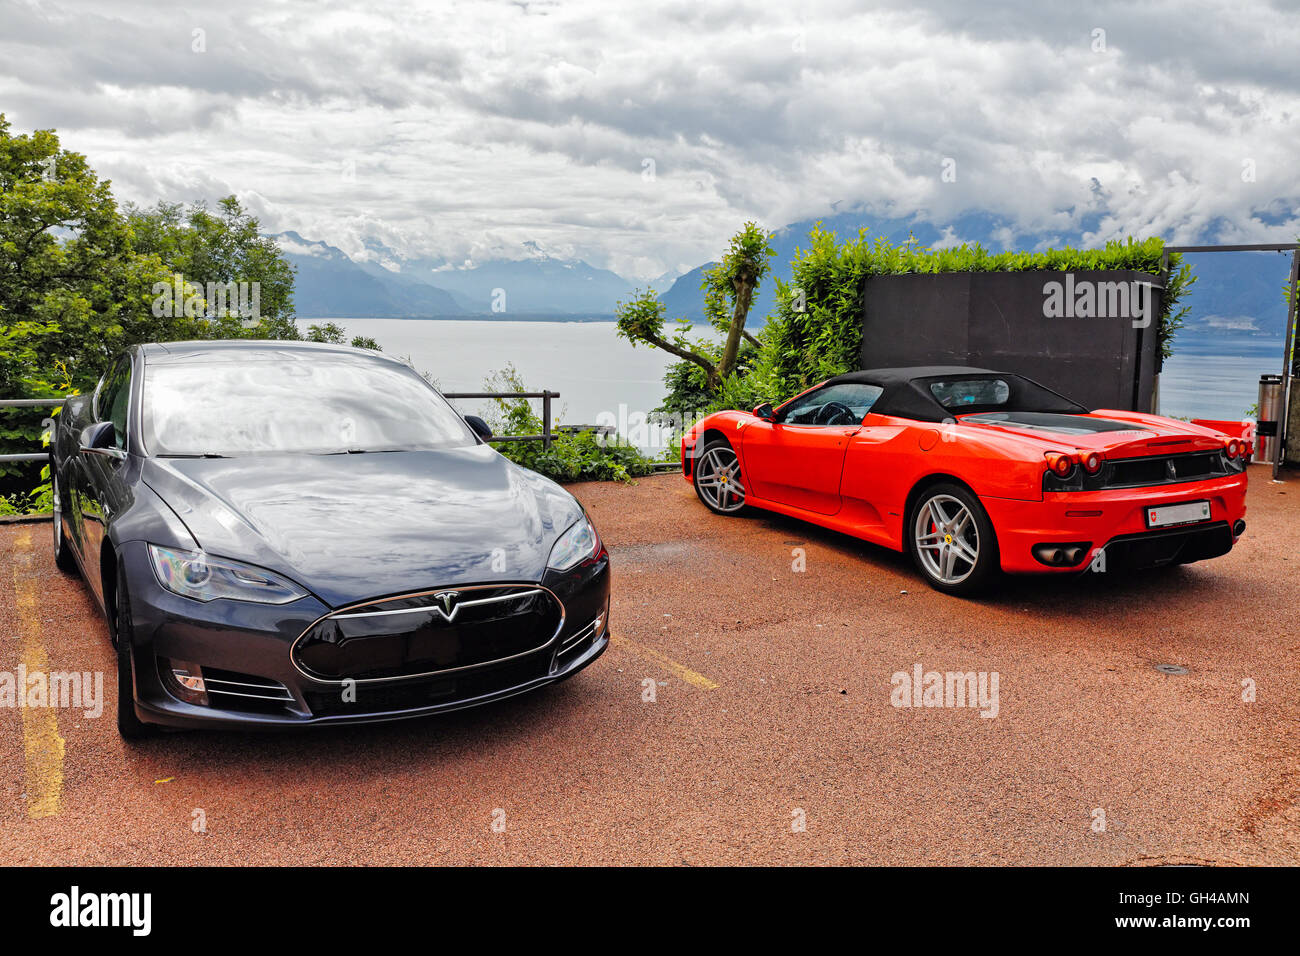 A  Tesla S Electric Sedan and a Red Ferrari Convertible Car Parked in a Scenic Overlook of Lake Geneva, Chebrex, - Stock Image